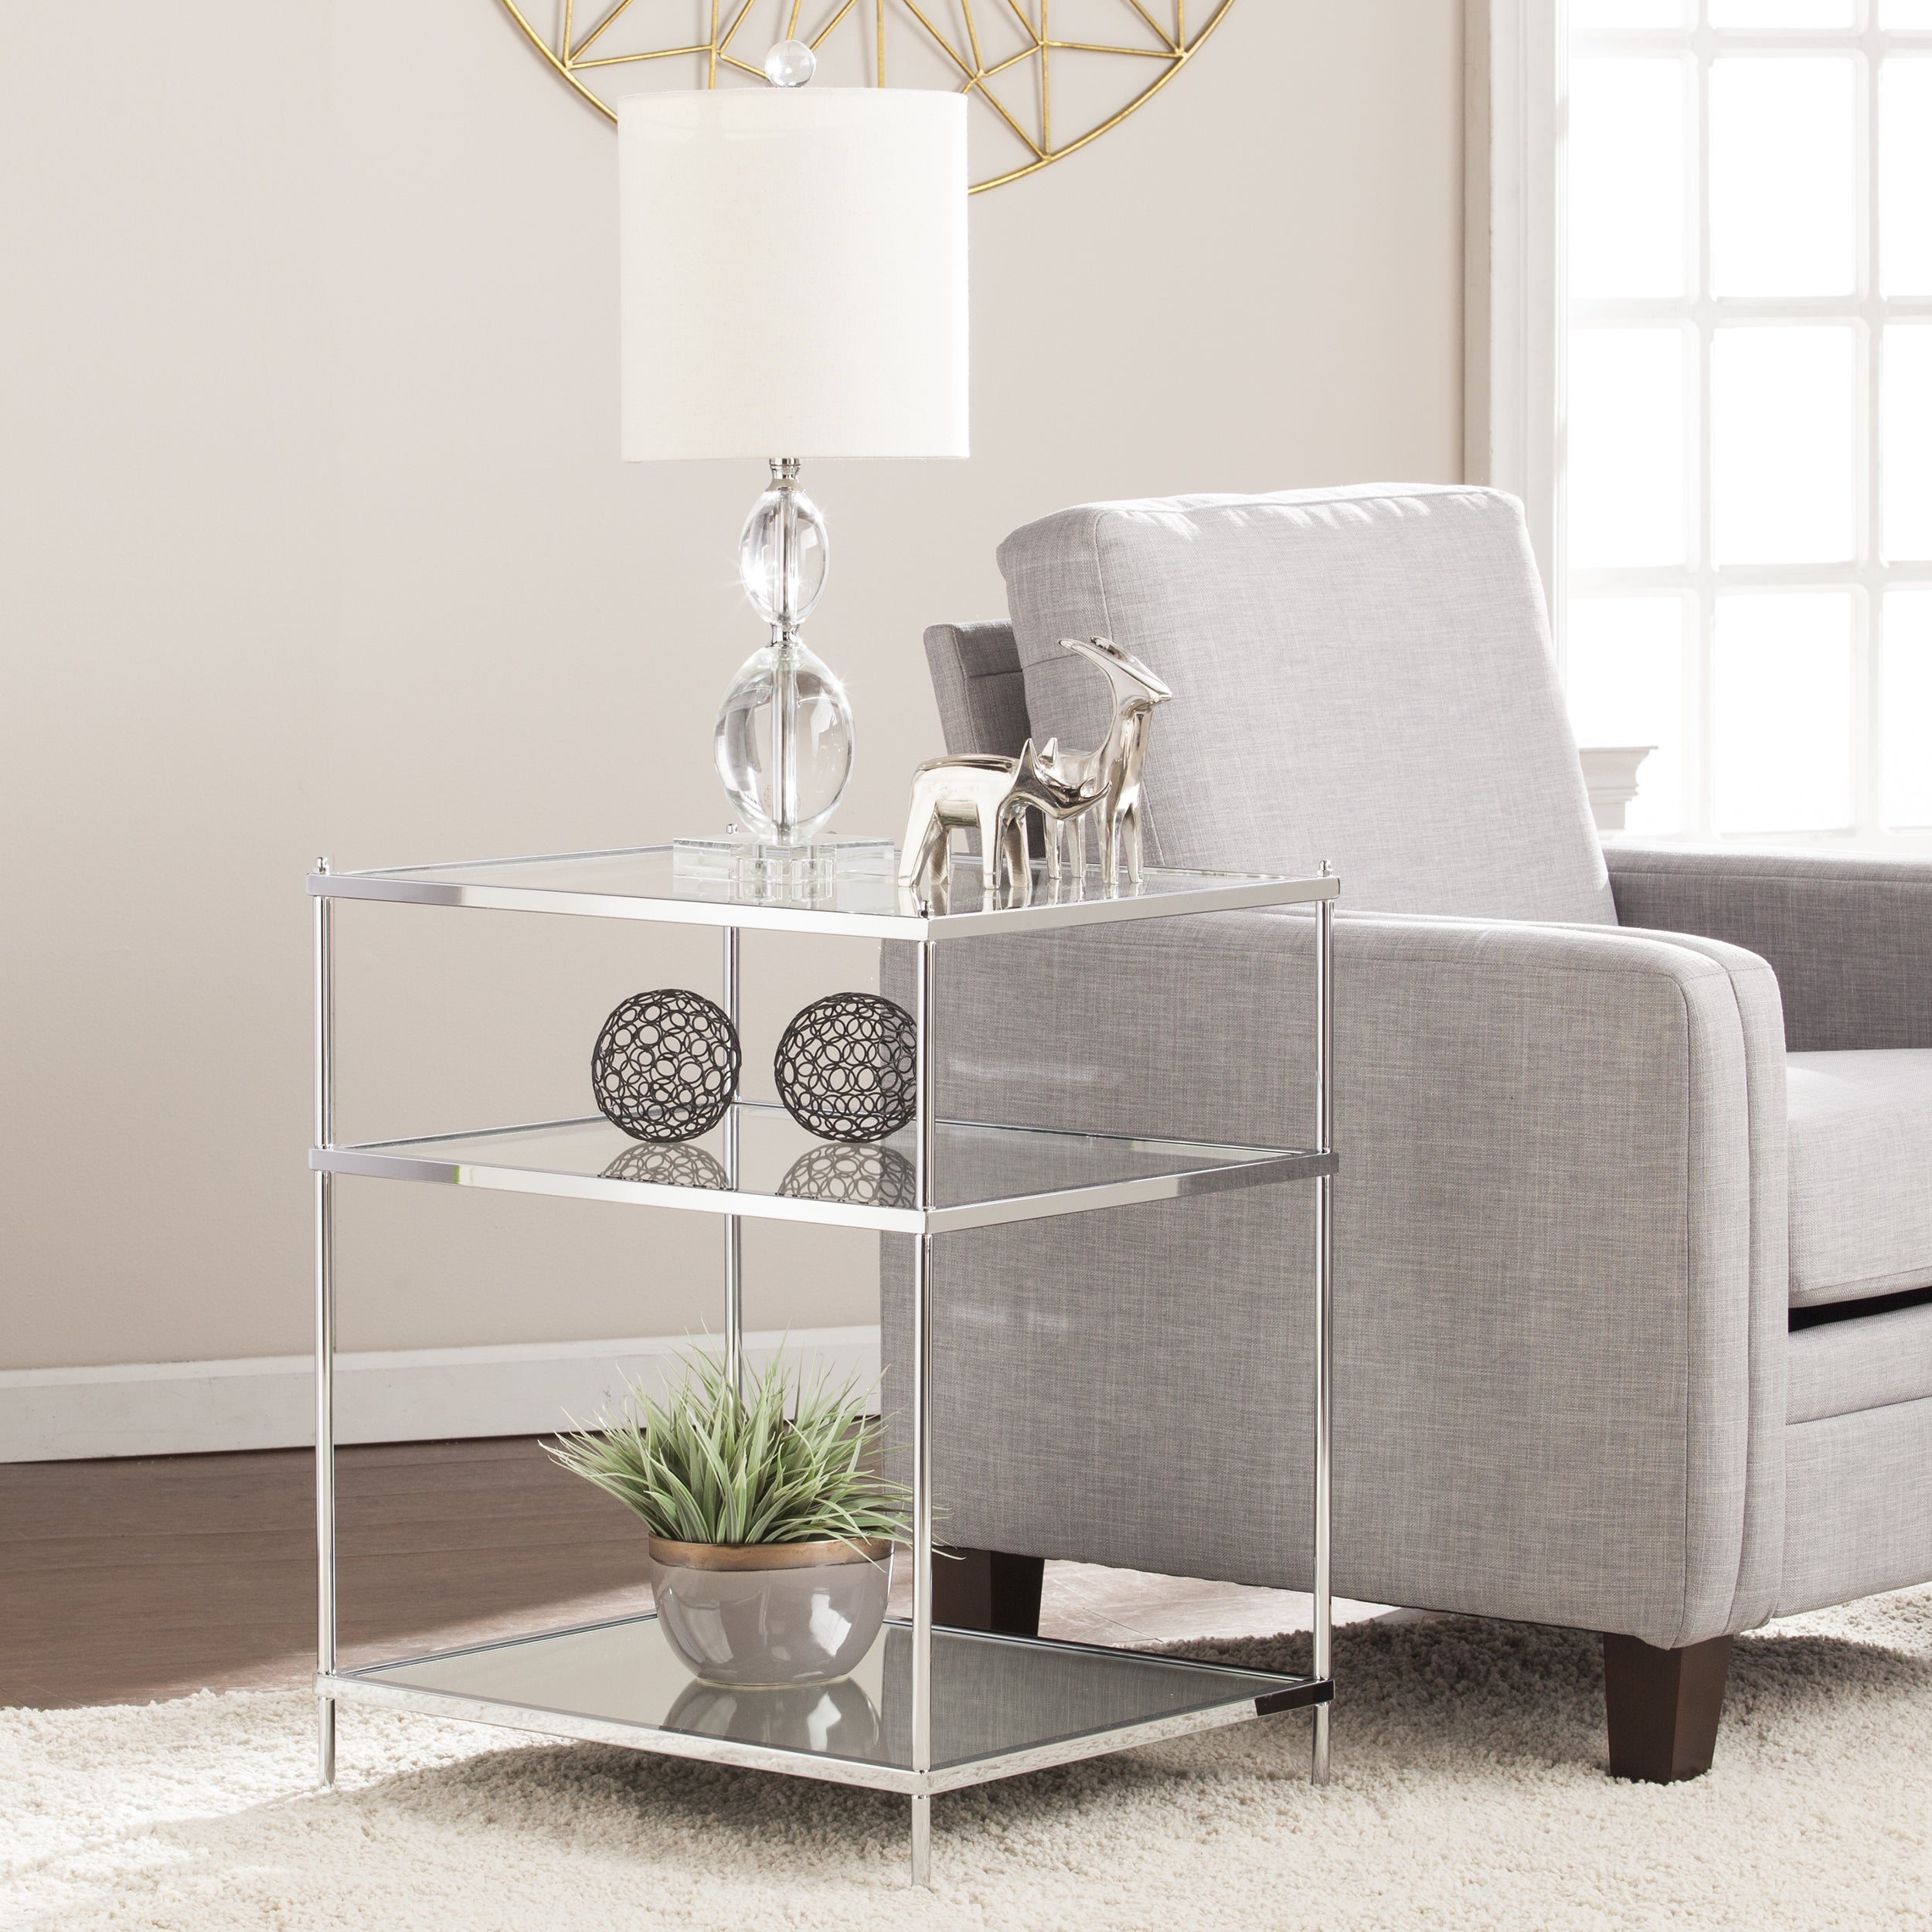 Exceptionnel Harper Blvd Knowles Glam Mirrored Side Table U2013 Chrome